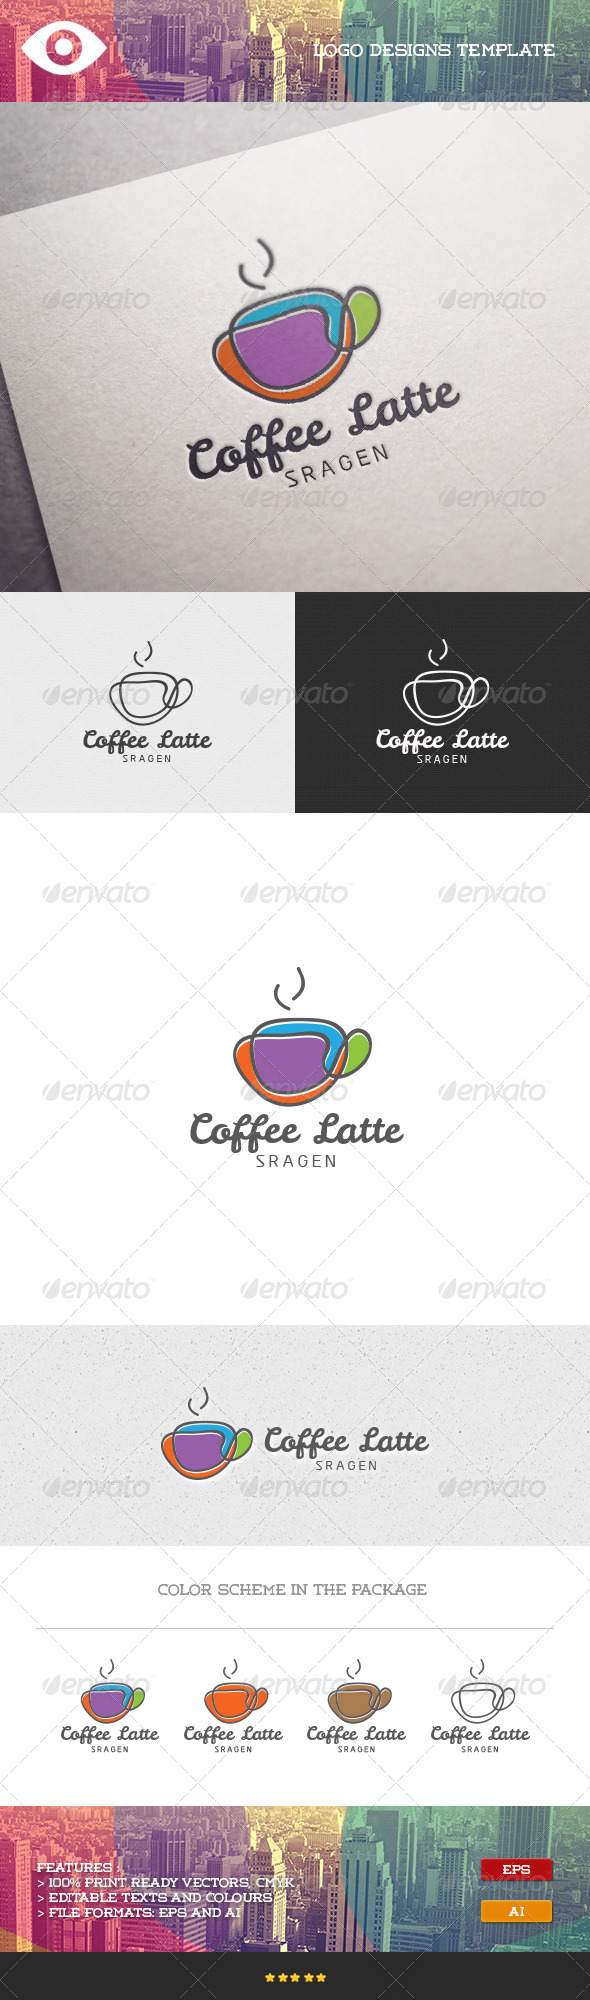 GraphicRiver Coffee Latte Logo 7098304